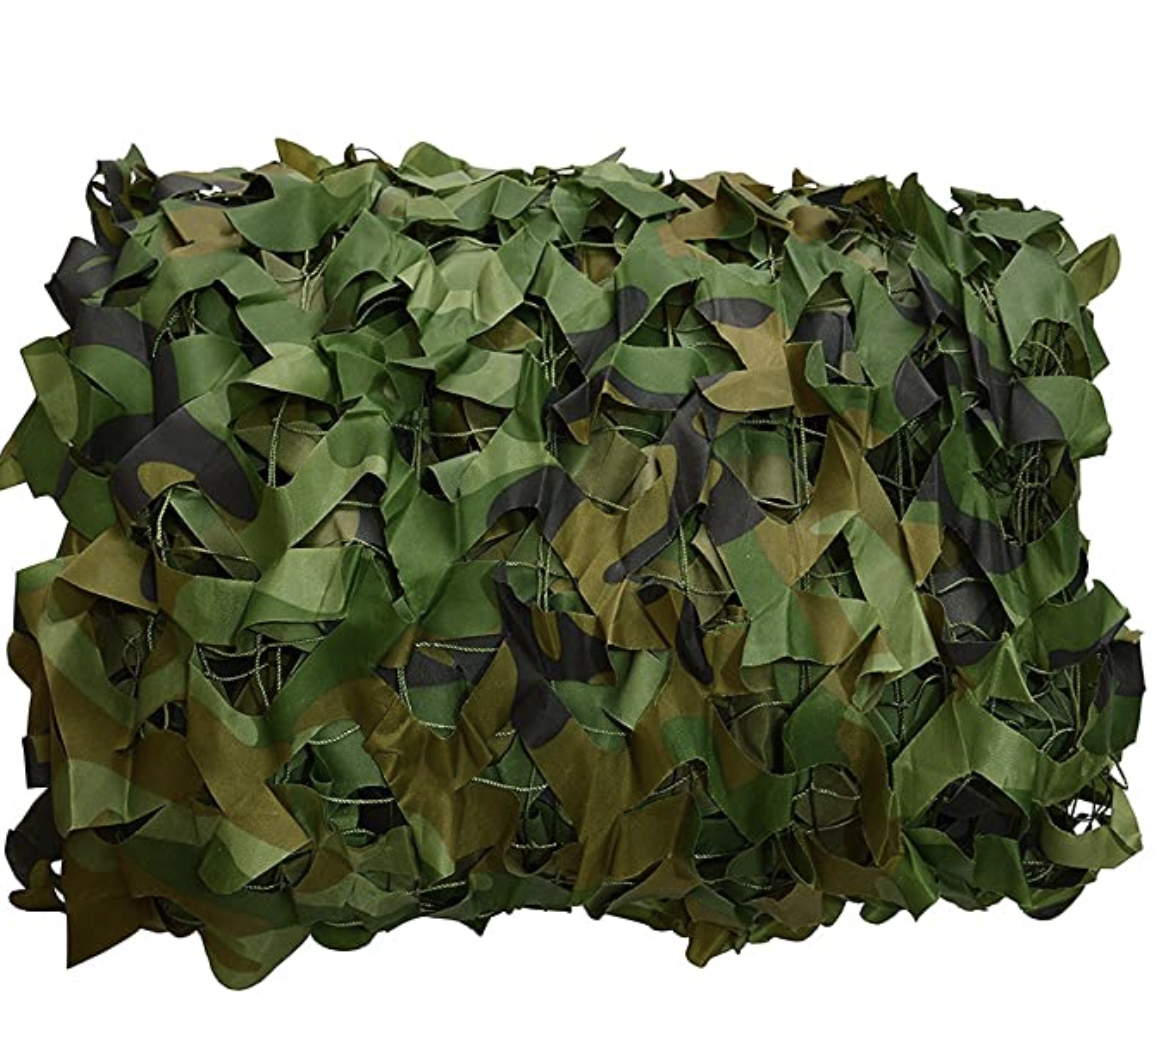 Joryn Camo Netting Camo Netting, Camouflage Net Blinds Great for Sunshade Camping Shooting Hunting Party Decoration